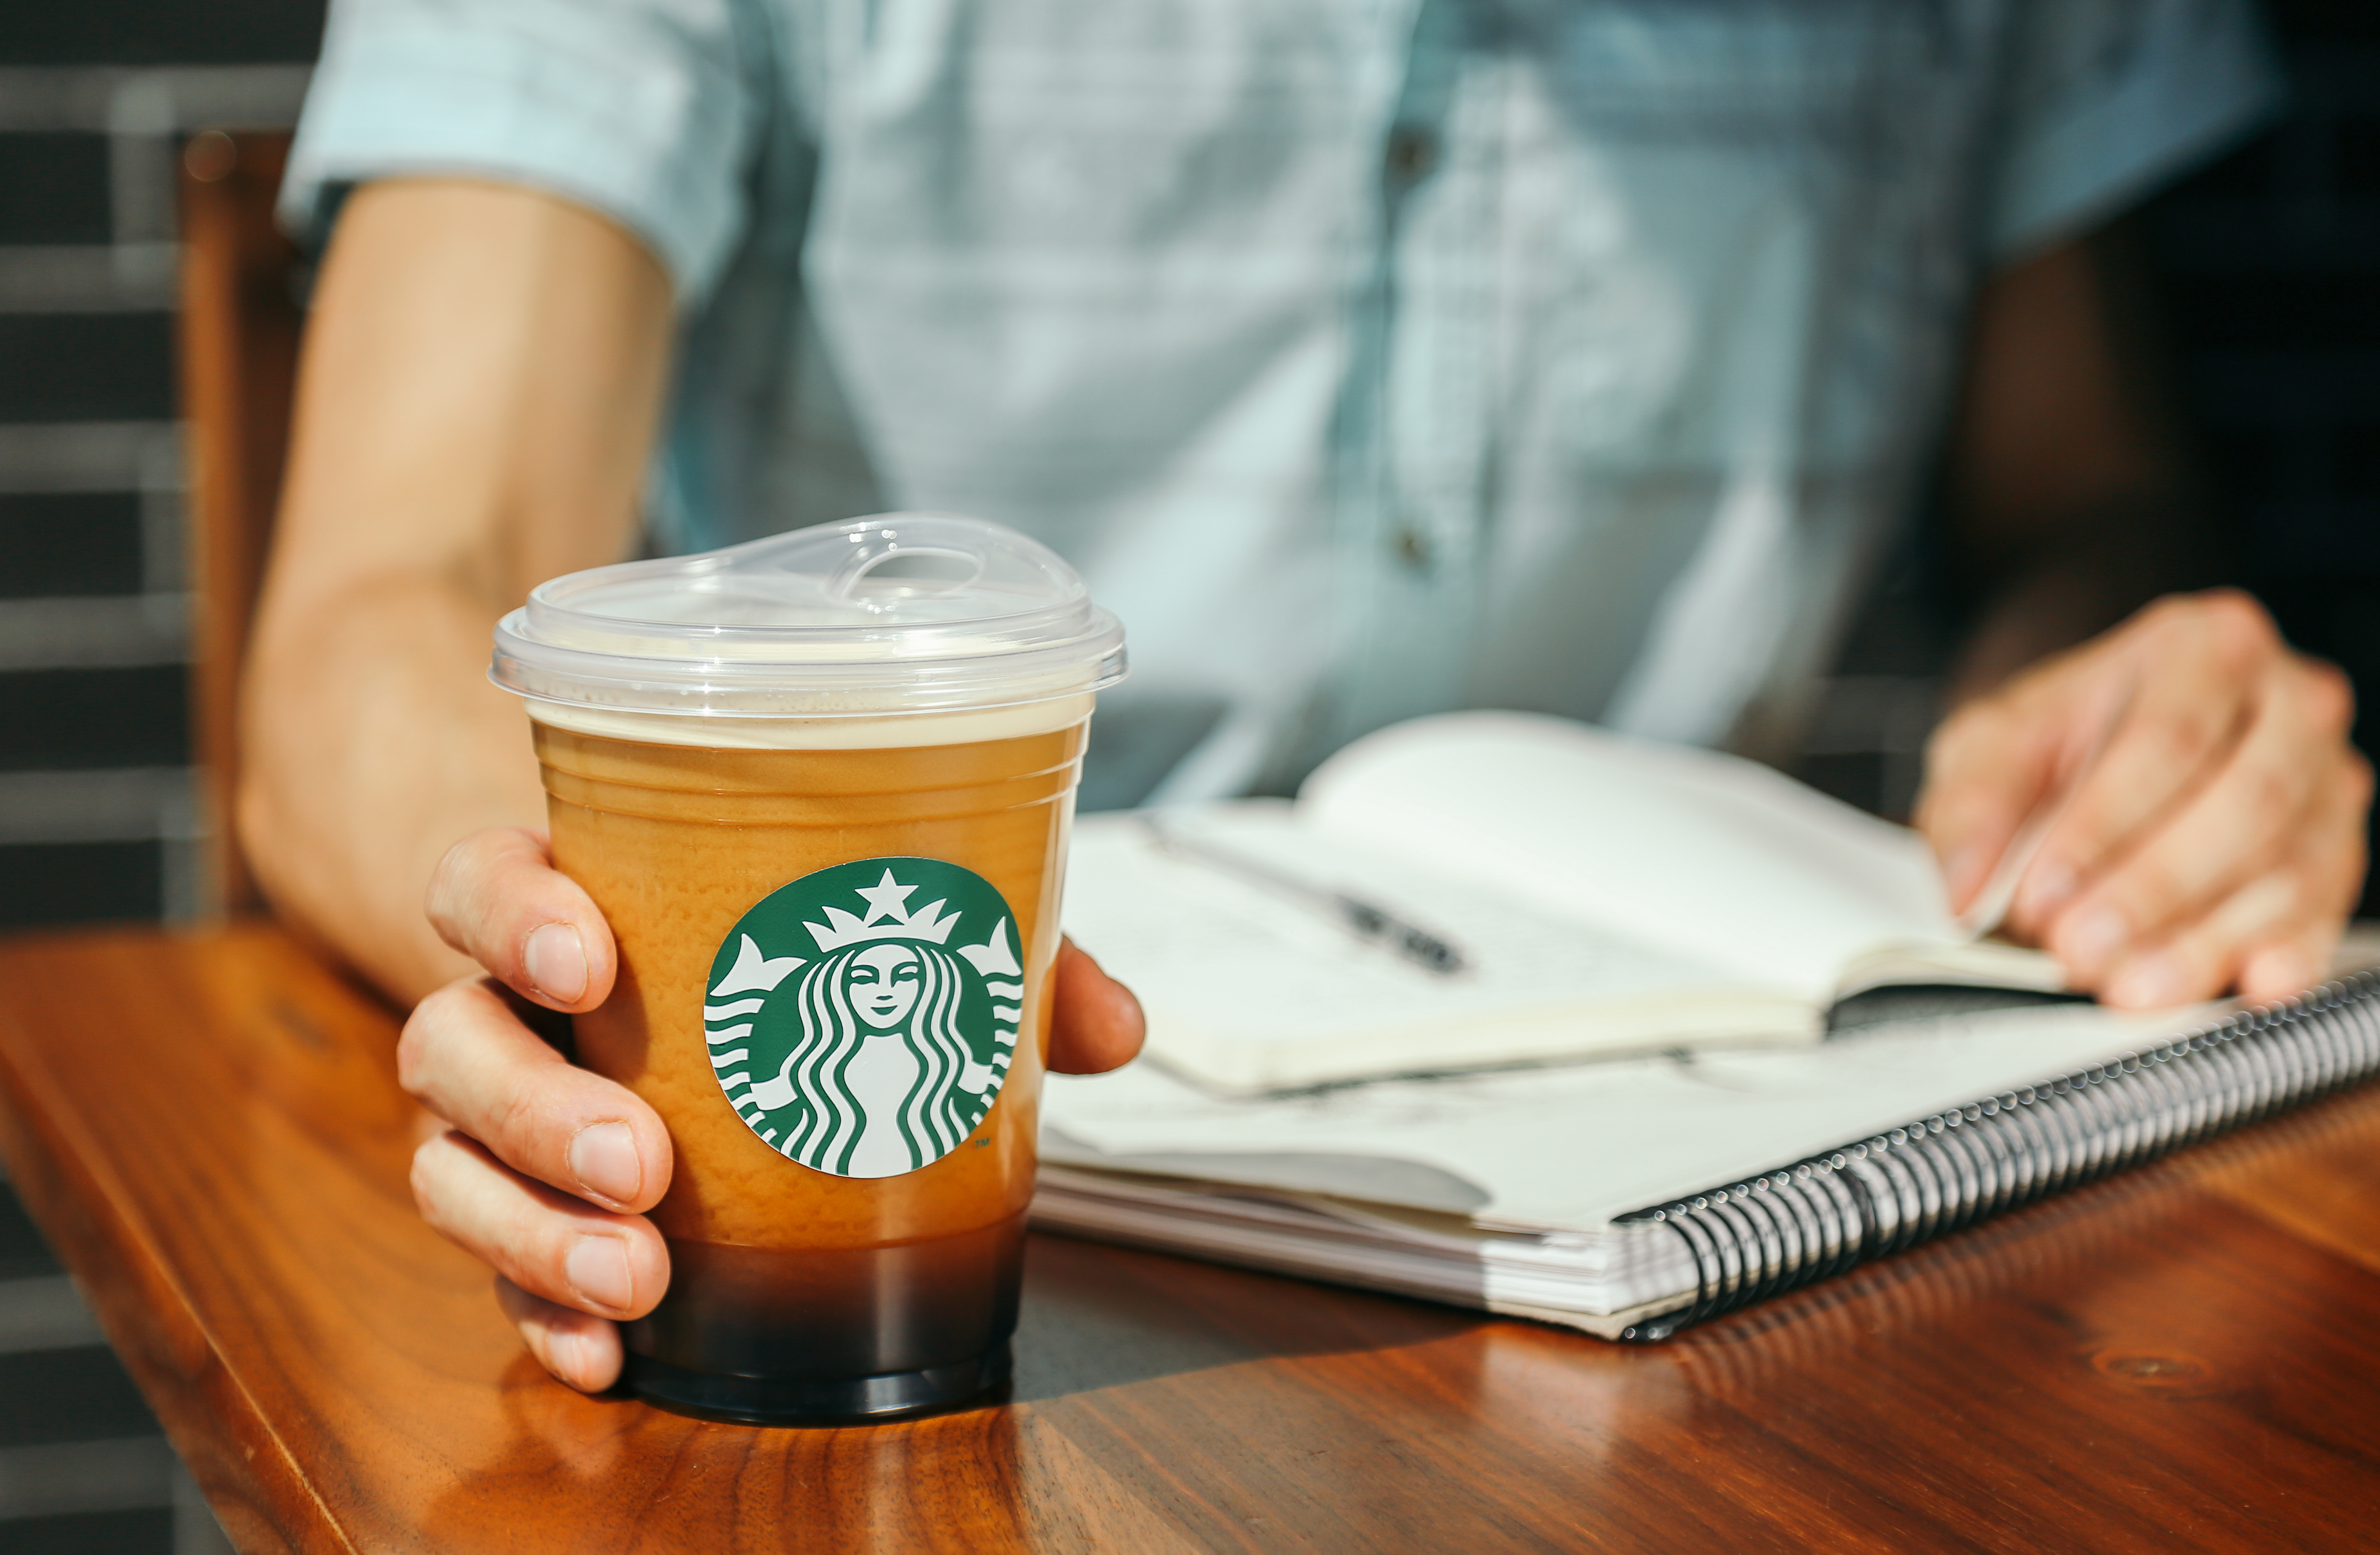 931525f6515 Eliminating straws is a response to requests from partners and customers,  said Colleen Chapman, vice president of Starbucks global social impact  overseeing ...